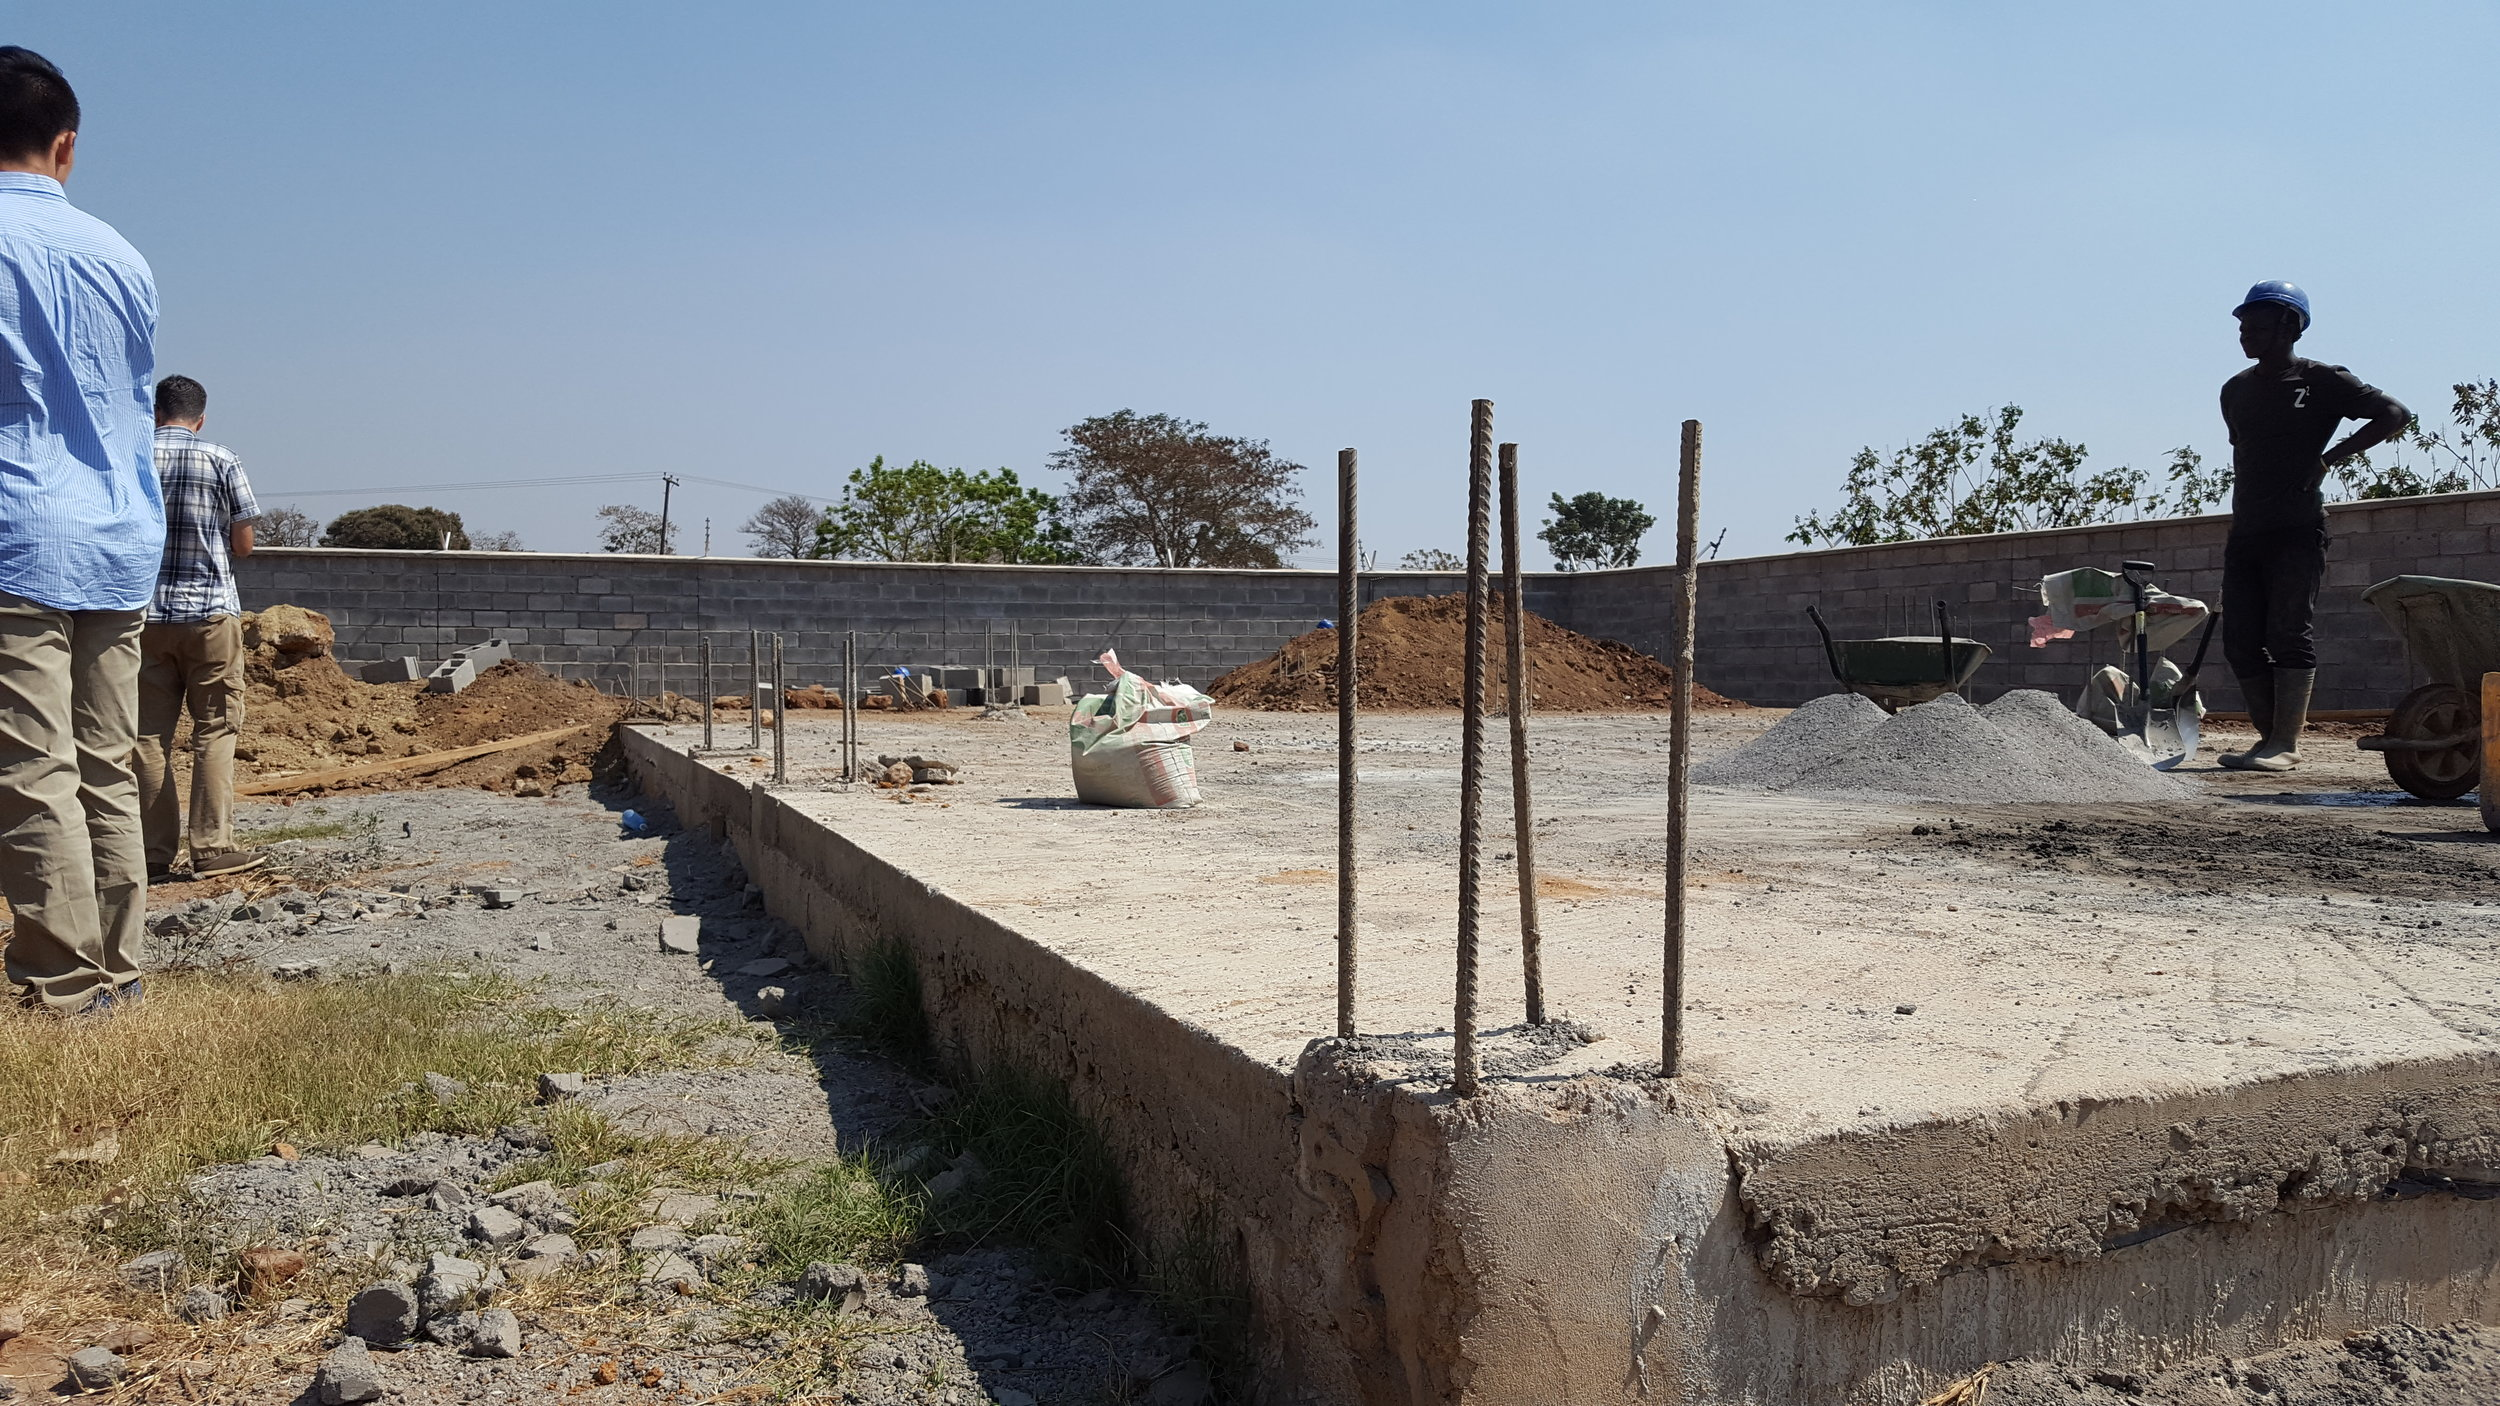 The foundation being laid for one of the structures on the future site of CAPA